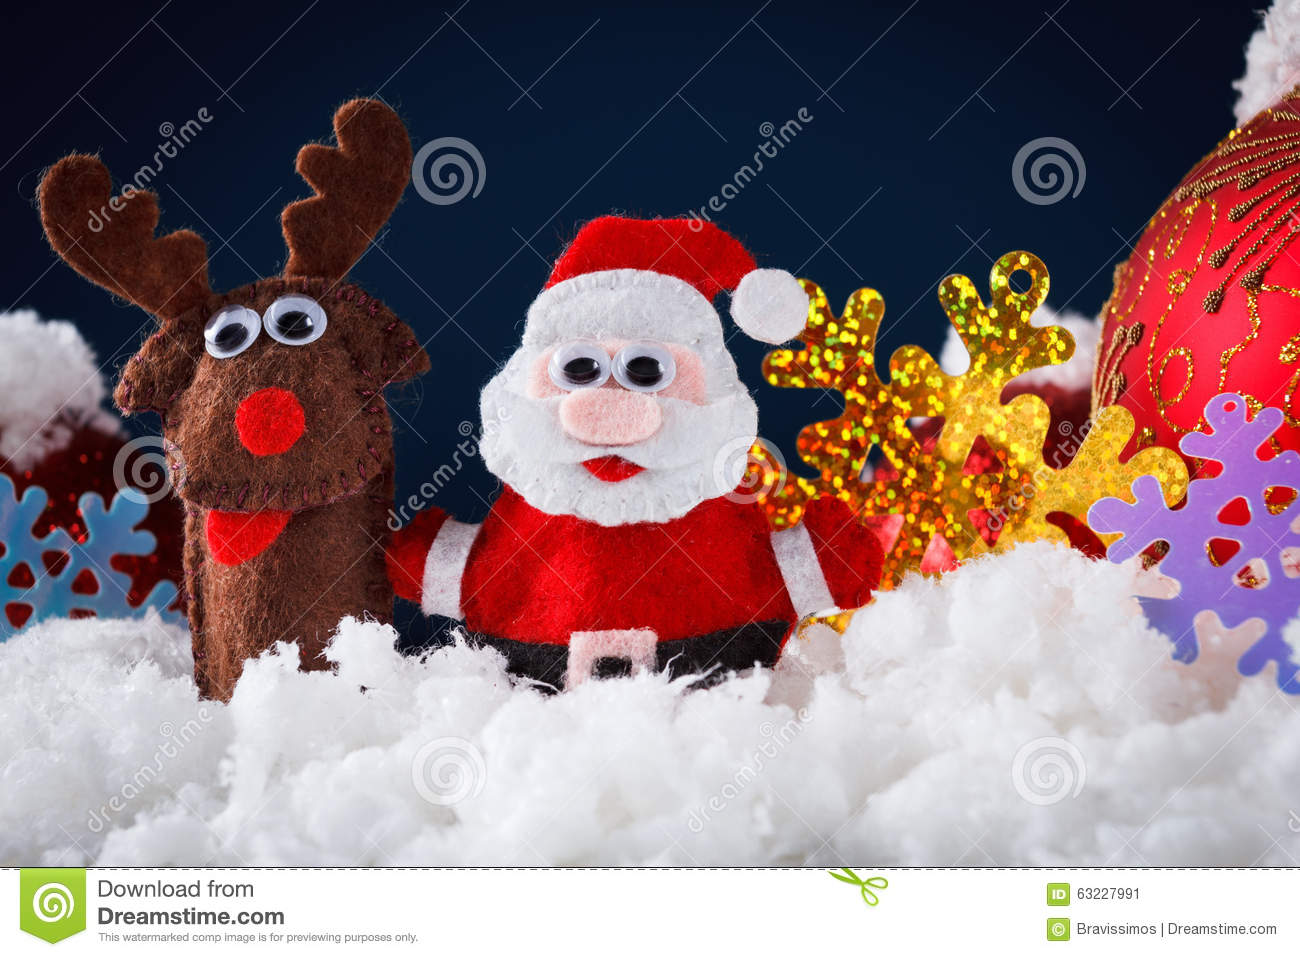 Christmas santa and reindeer toys on snow with festive new